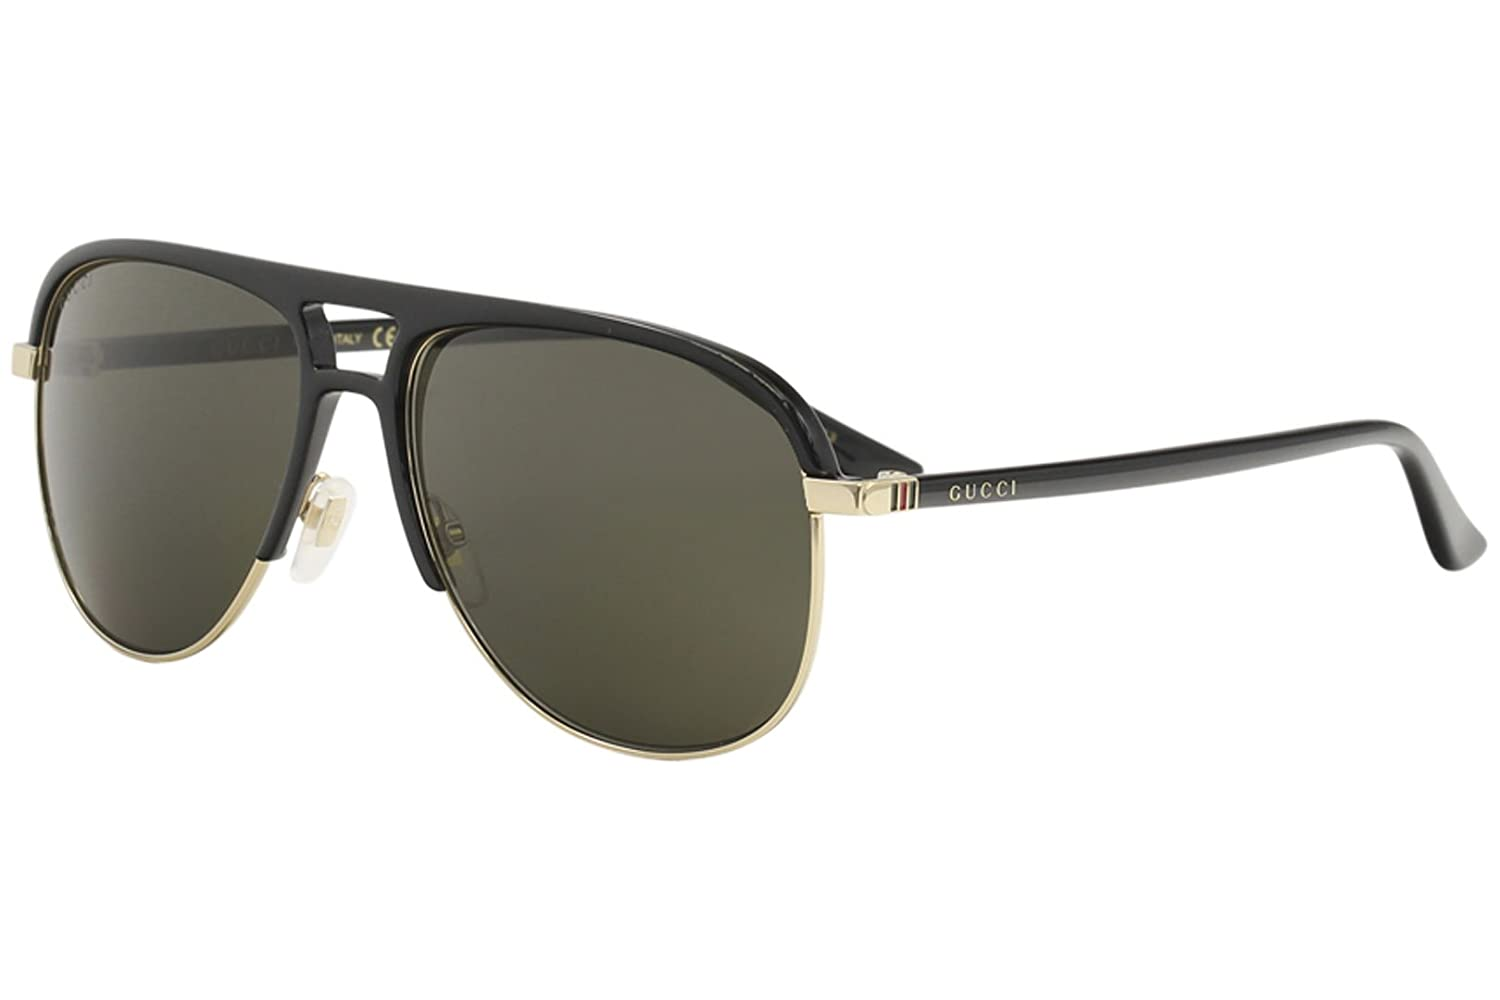 59a37a86c65 Amazon.com  Gucci Grey Aviator Sunglasses GG0292S 001 60  Clothing